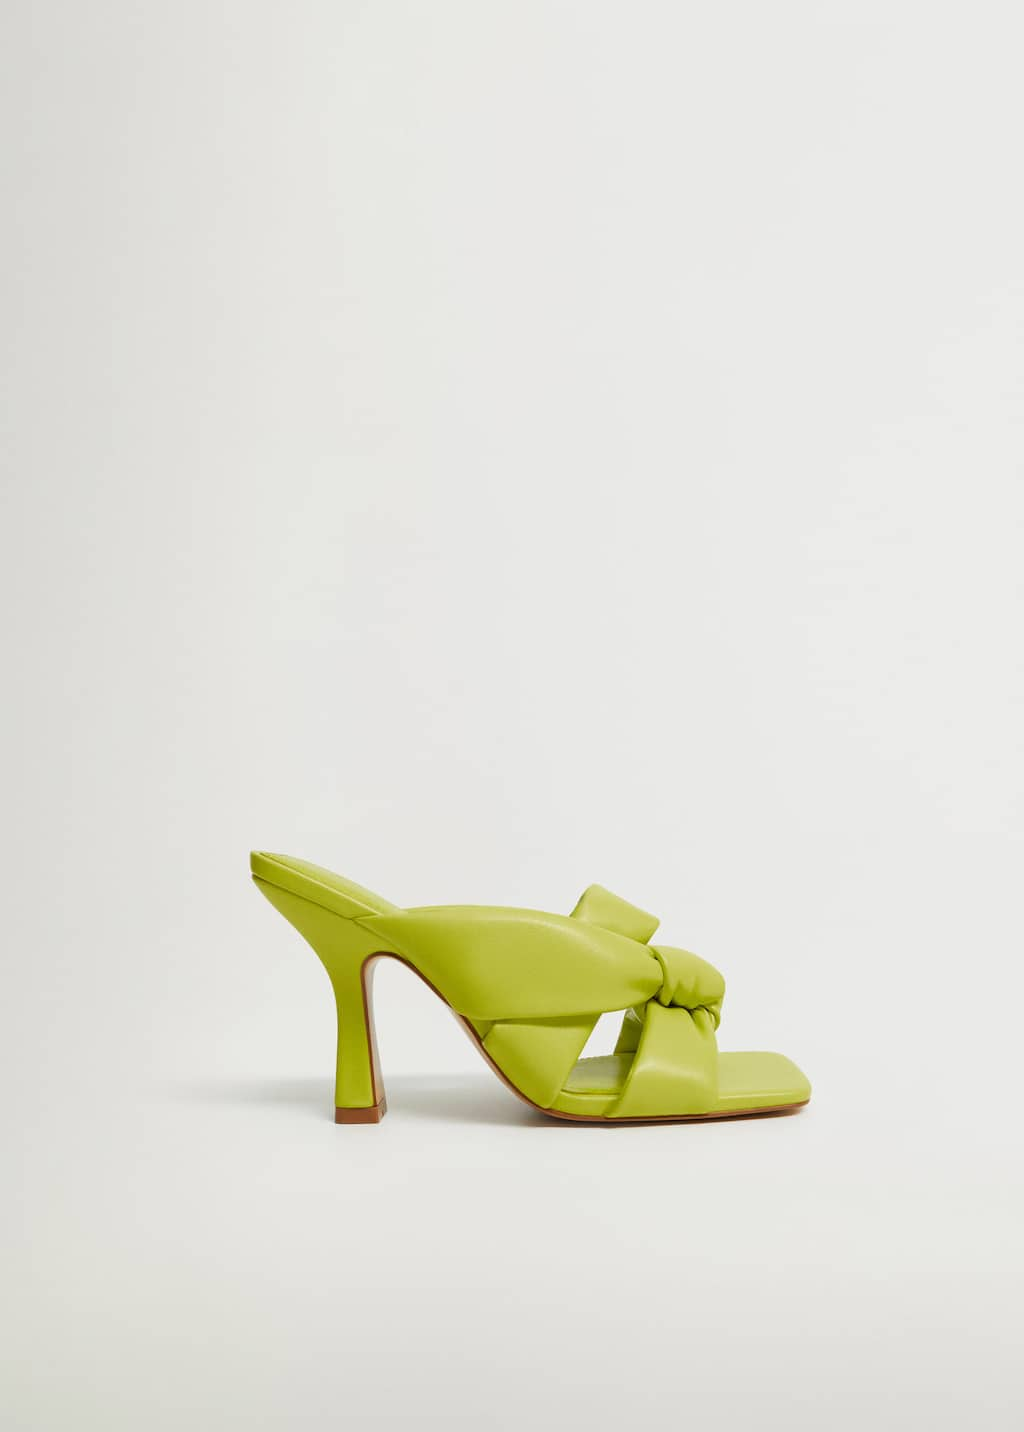 Knot heel sandals - Article without model